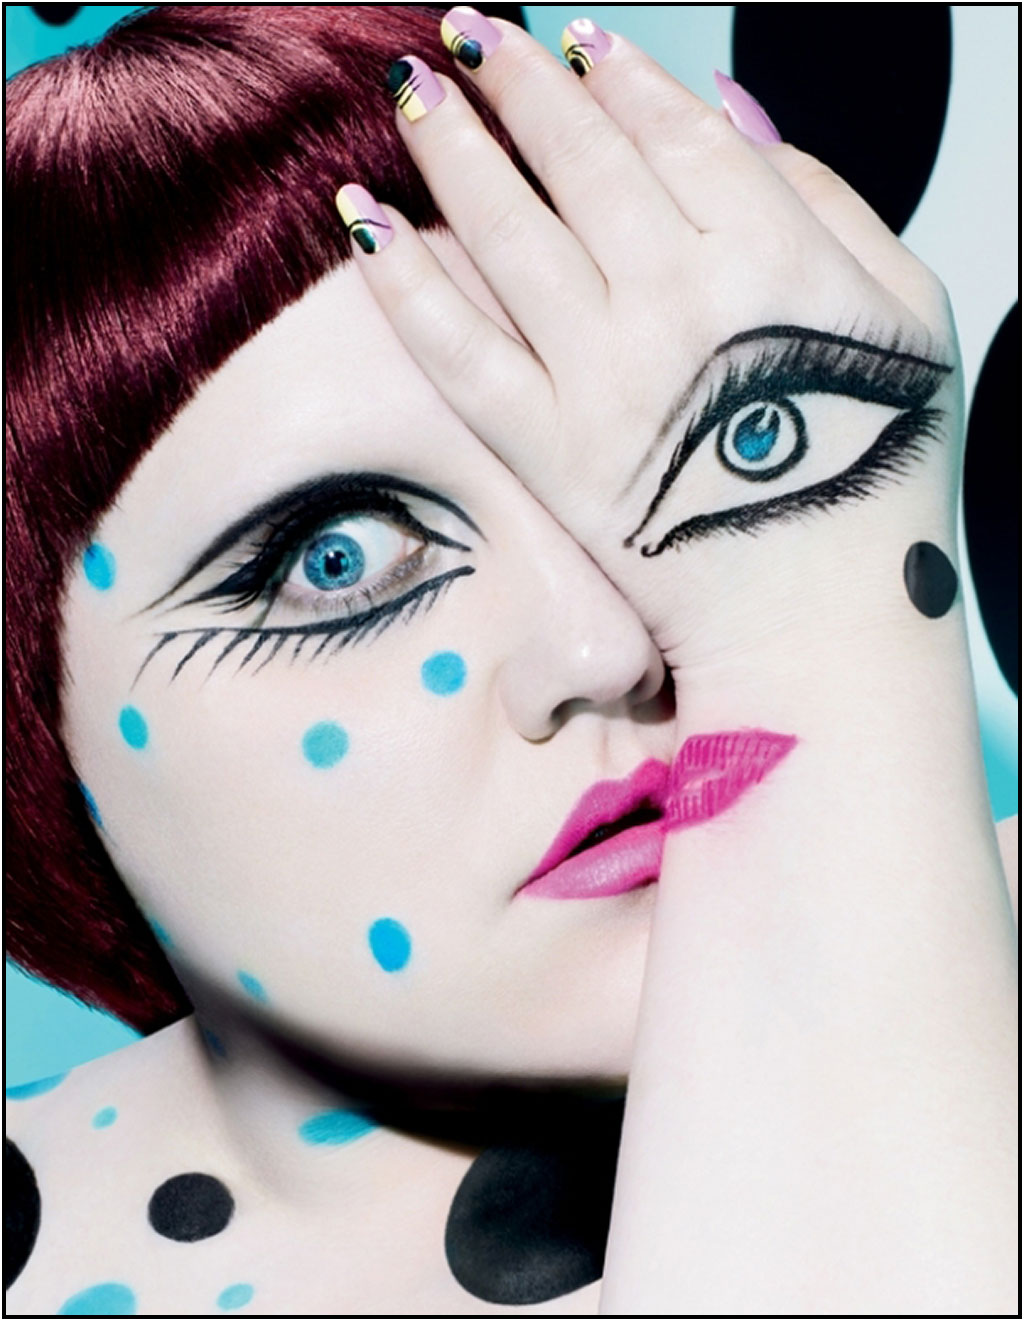 MAC for Beth Ditto Collection is bold and beautiful